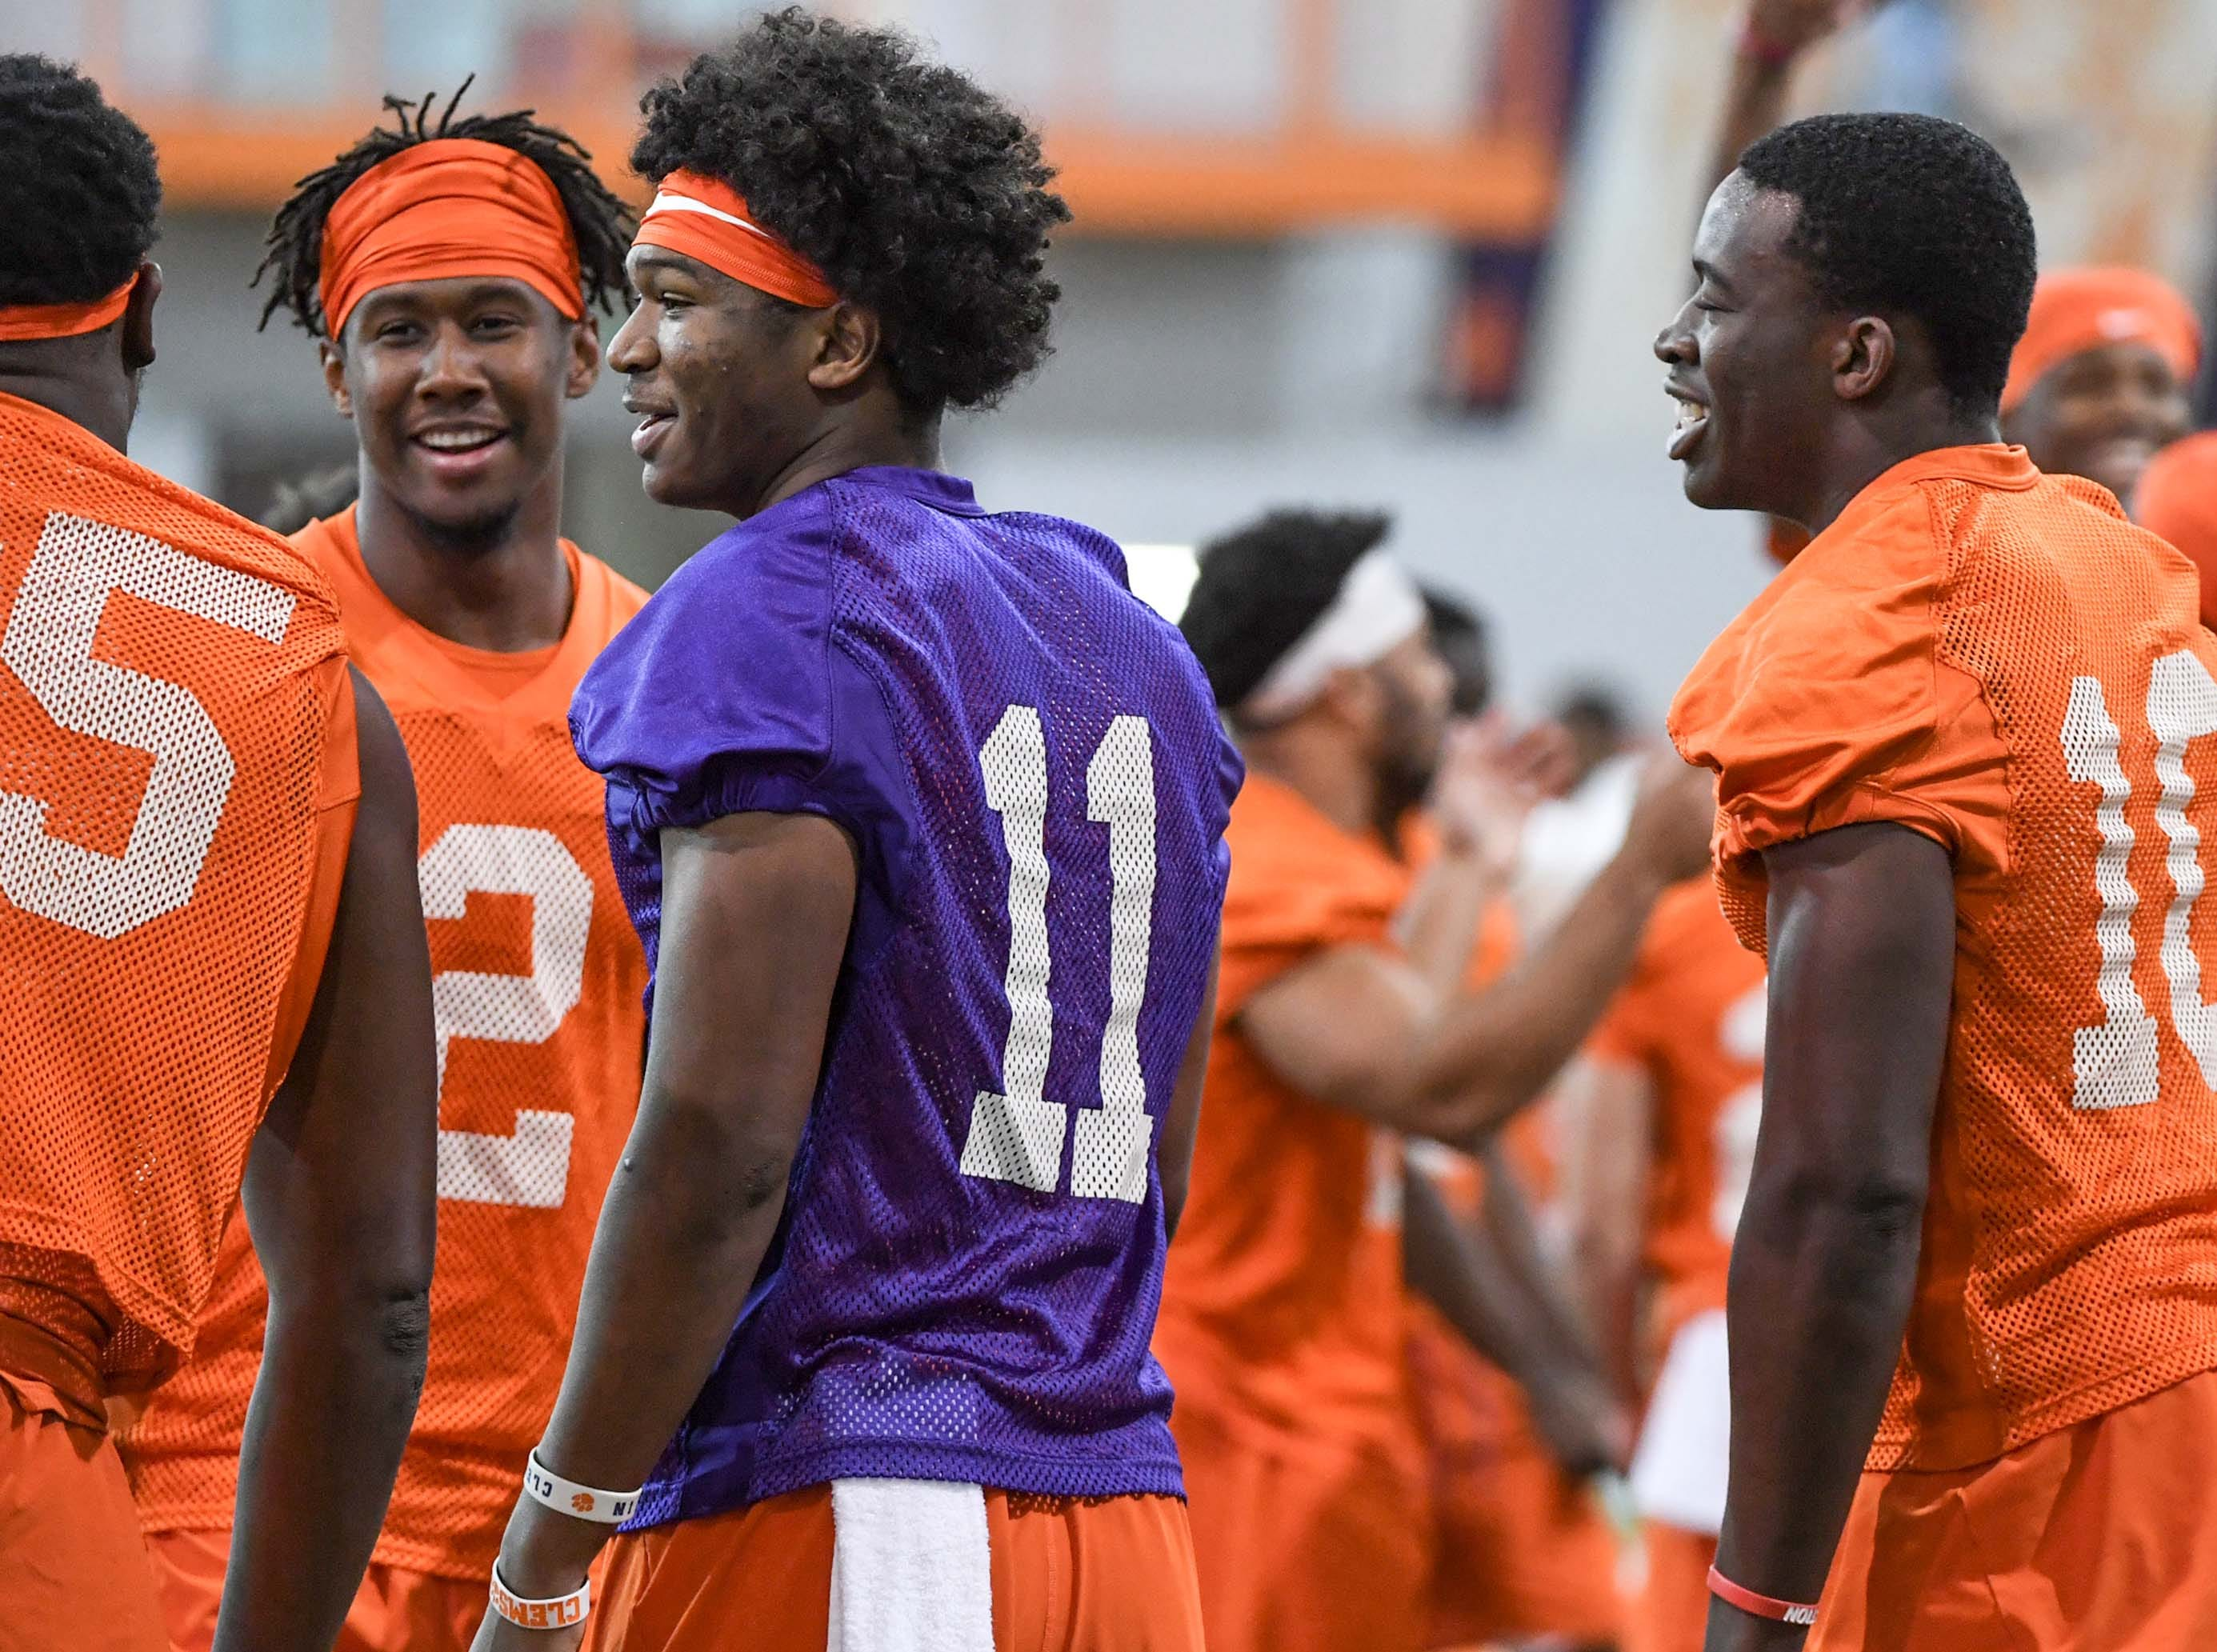 Clemson wide receiver Frank Ladson, Jr. (2), quarterback Taisun Phommachanh(11), and wide receiver Joseph Ngata (10) greet each other during practice at the Poe Indoor Facility in Clemson Friday.